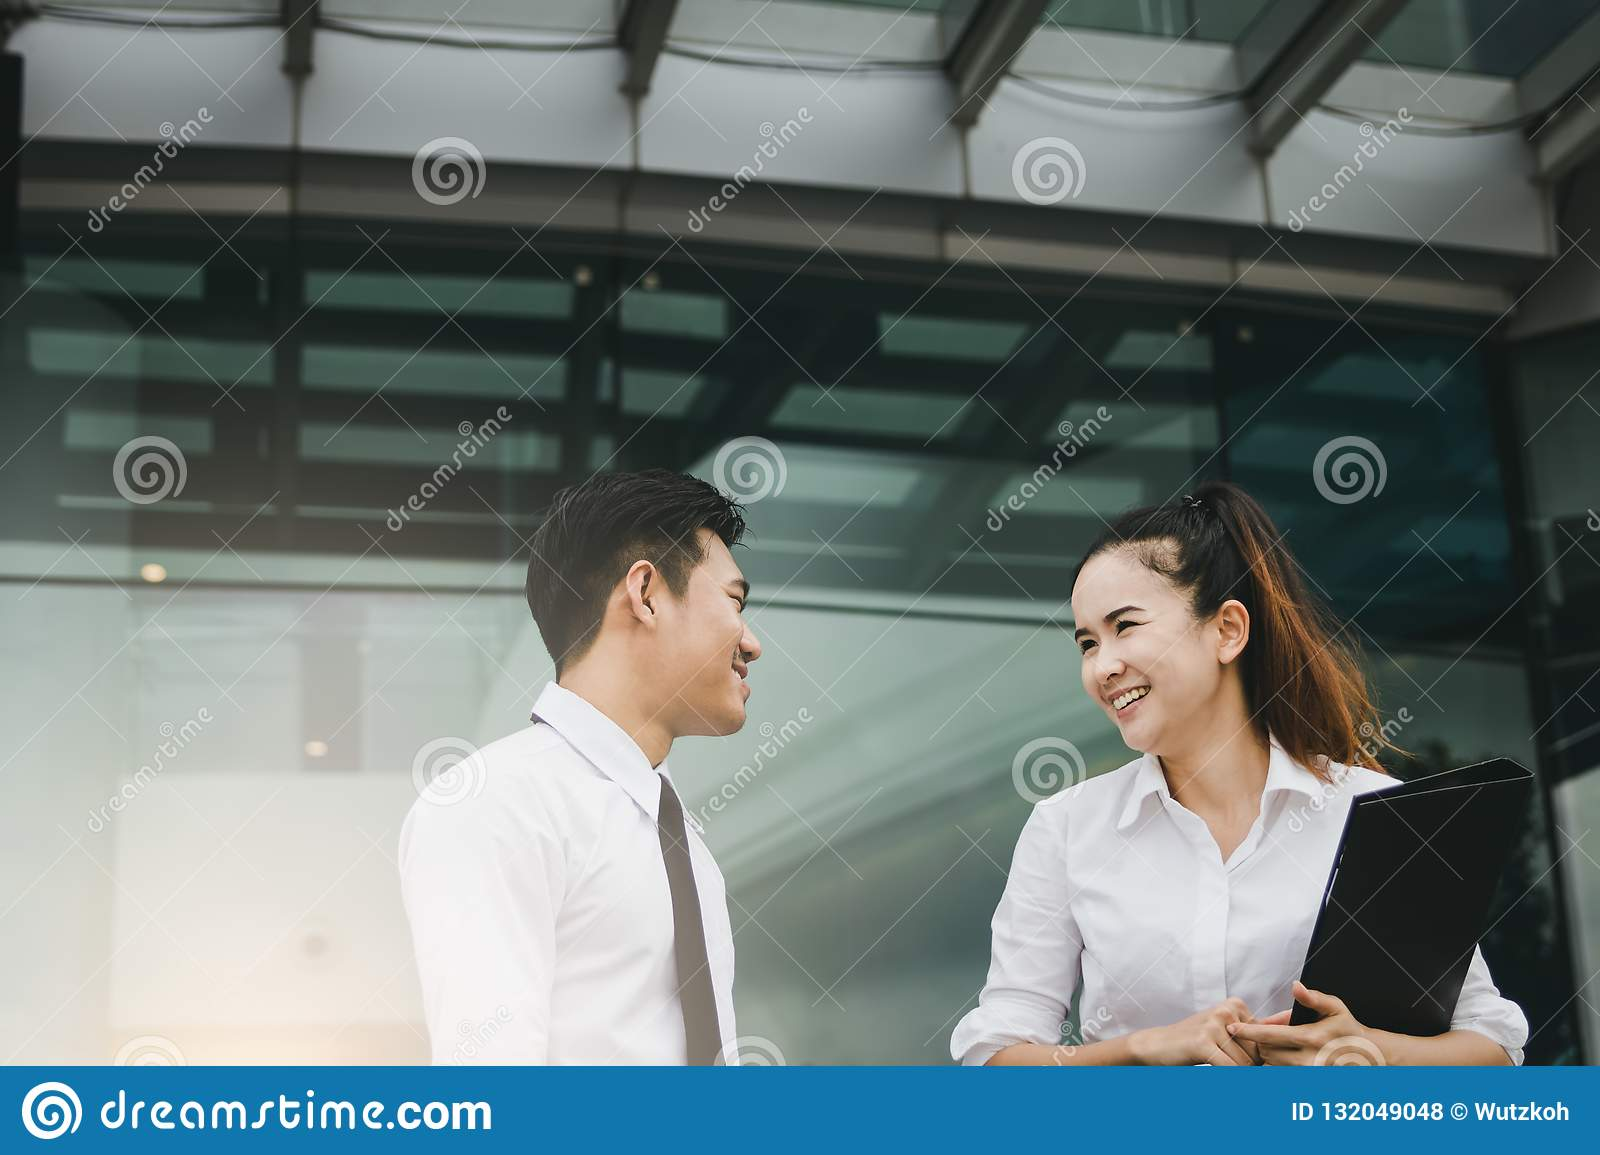 Two business people talking together at office building.